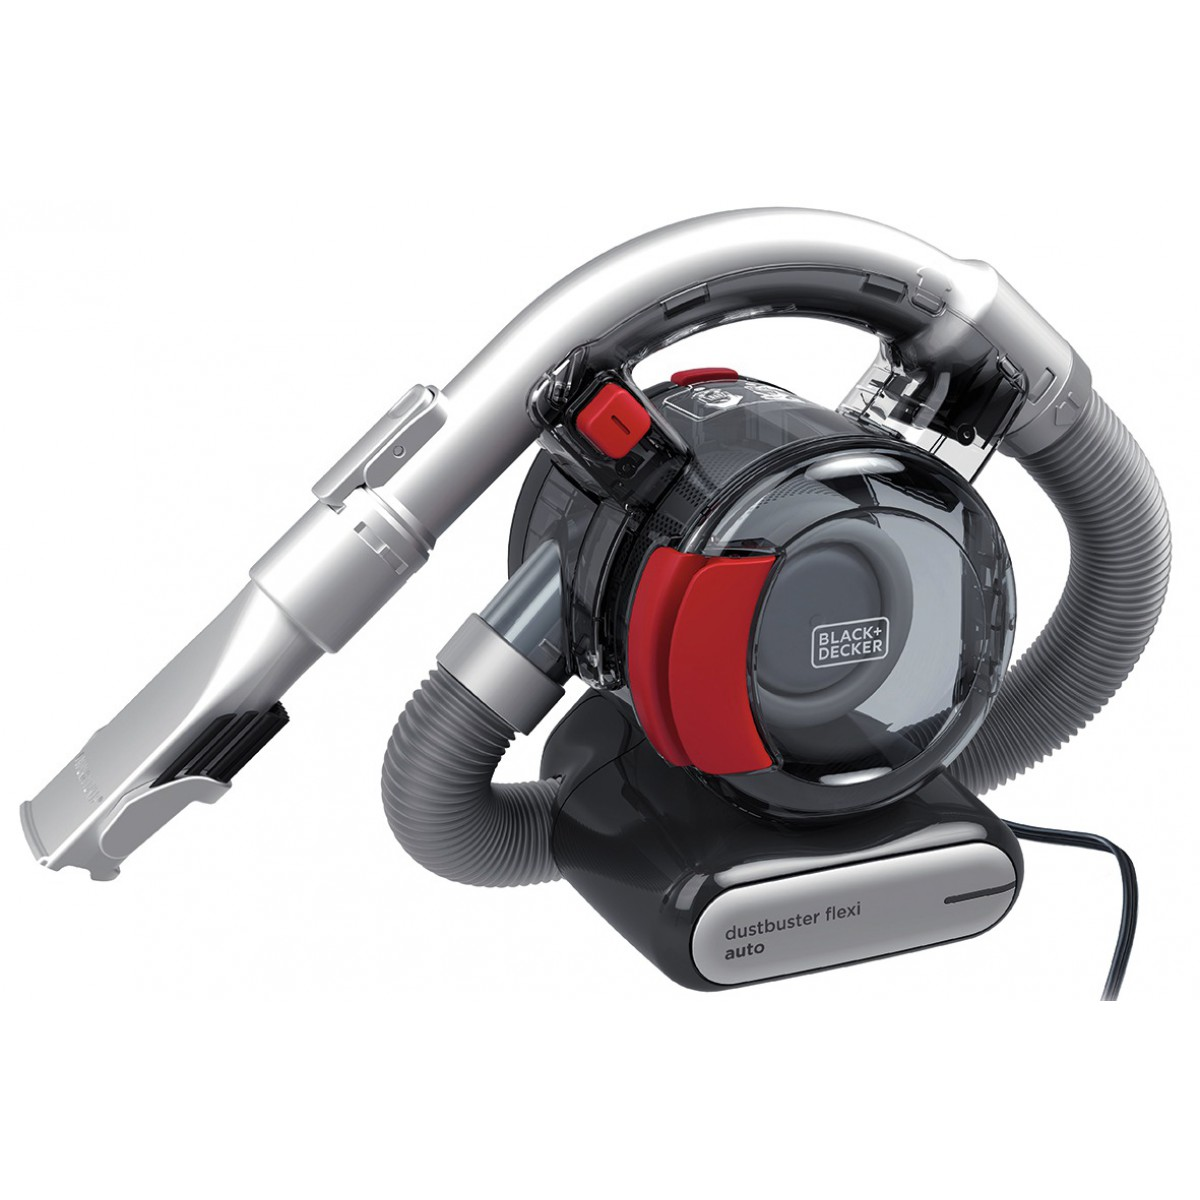 Aspirateur à main Dustbuster Flexi Auto PD1200AV Black & Decker - 12 V